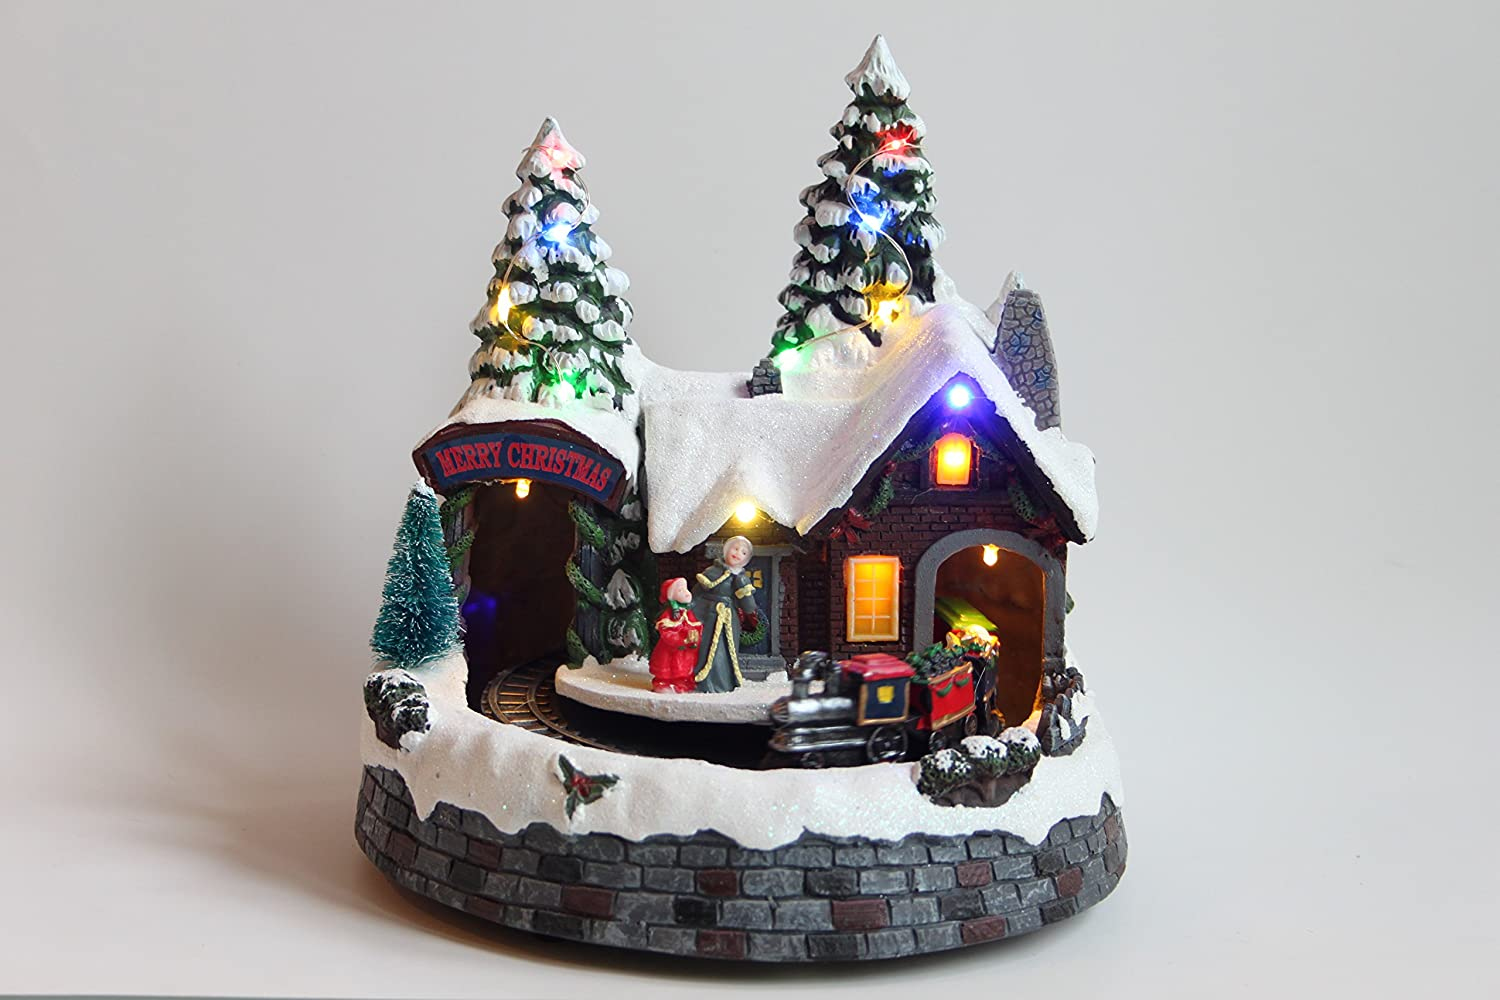 Festive Led Light up Musical Christmas Train Station Scene with Revolving Train (22cm Clock Tower)